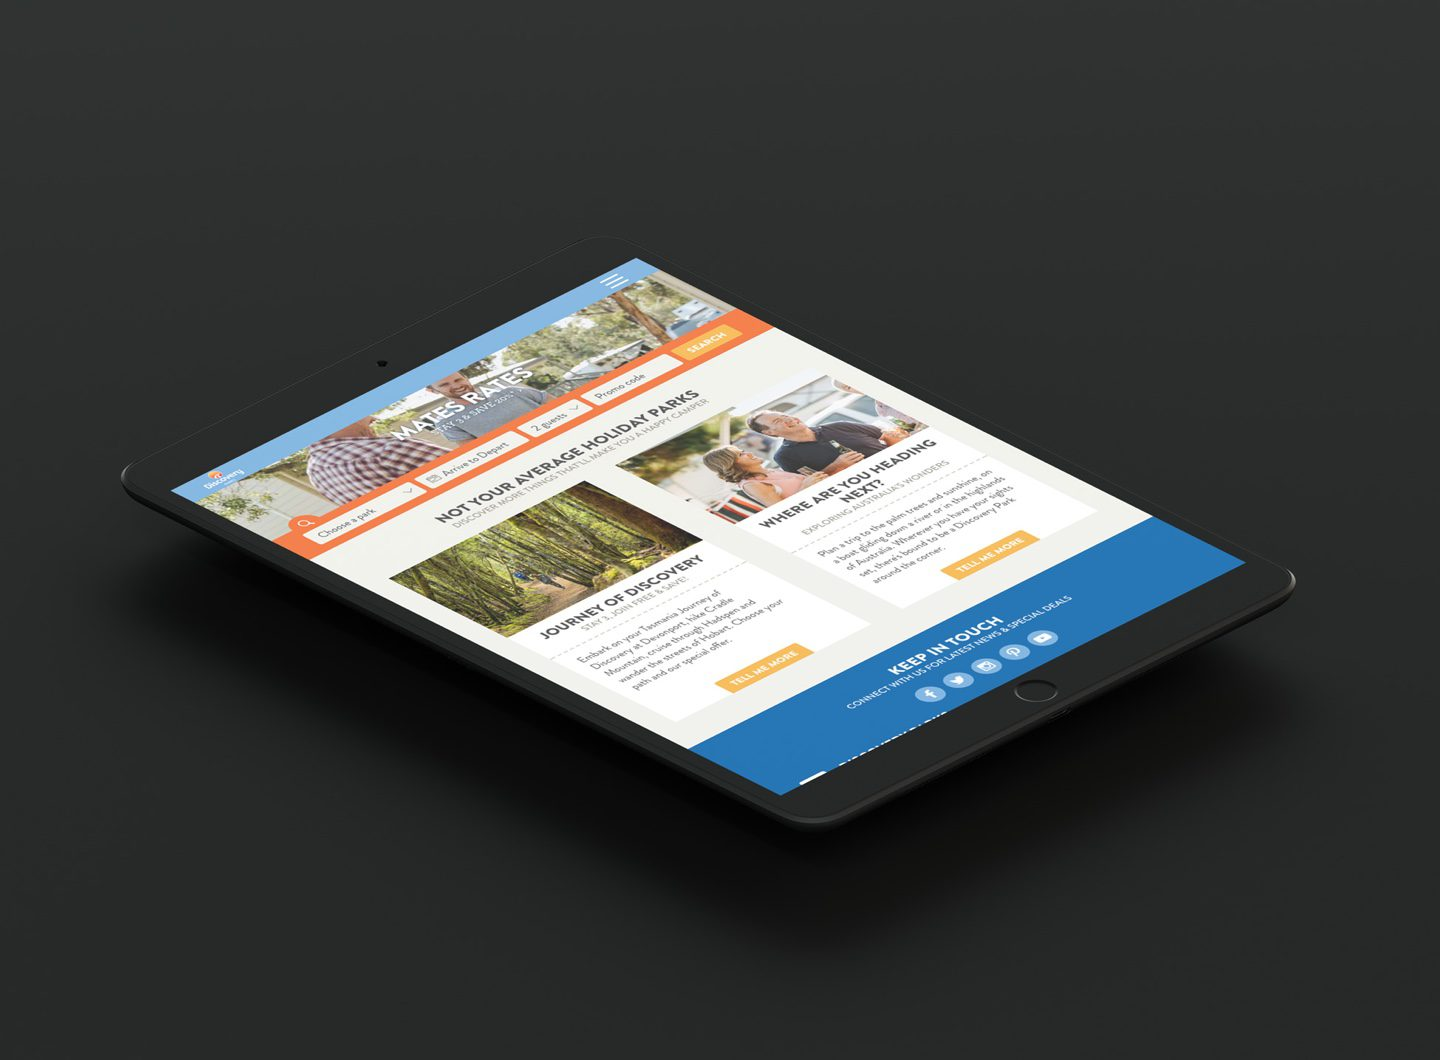 An iPad showing the Discovery Parks tablet size website